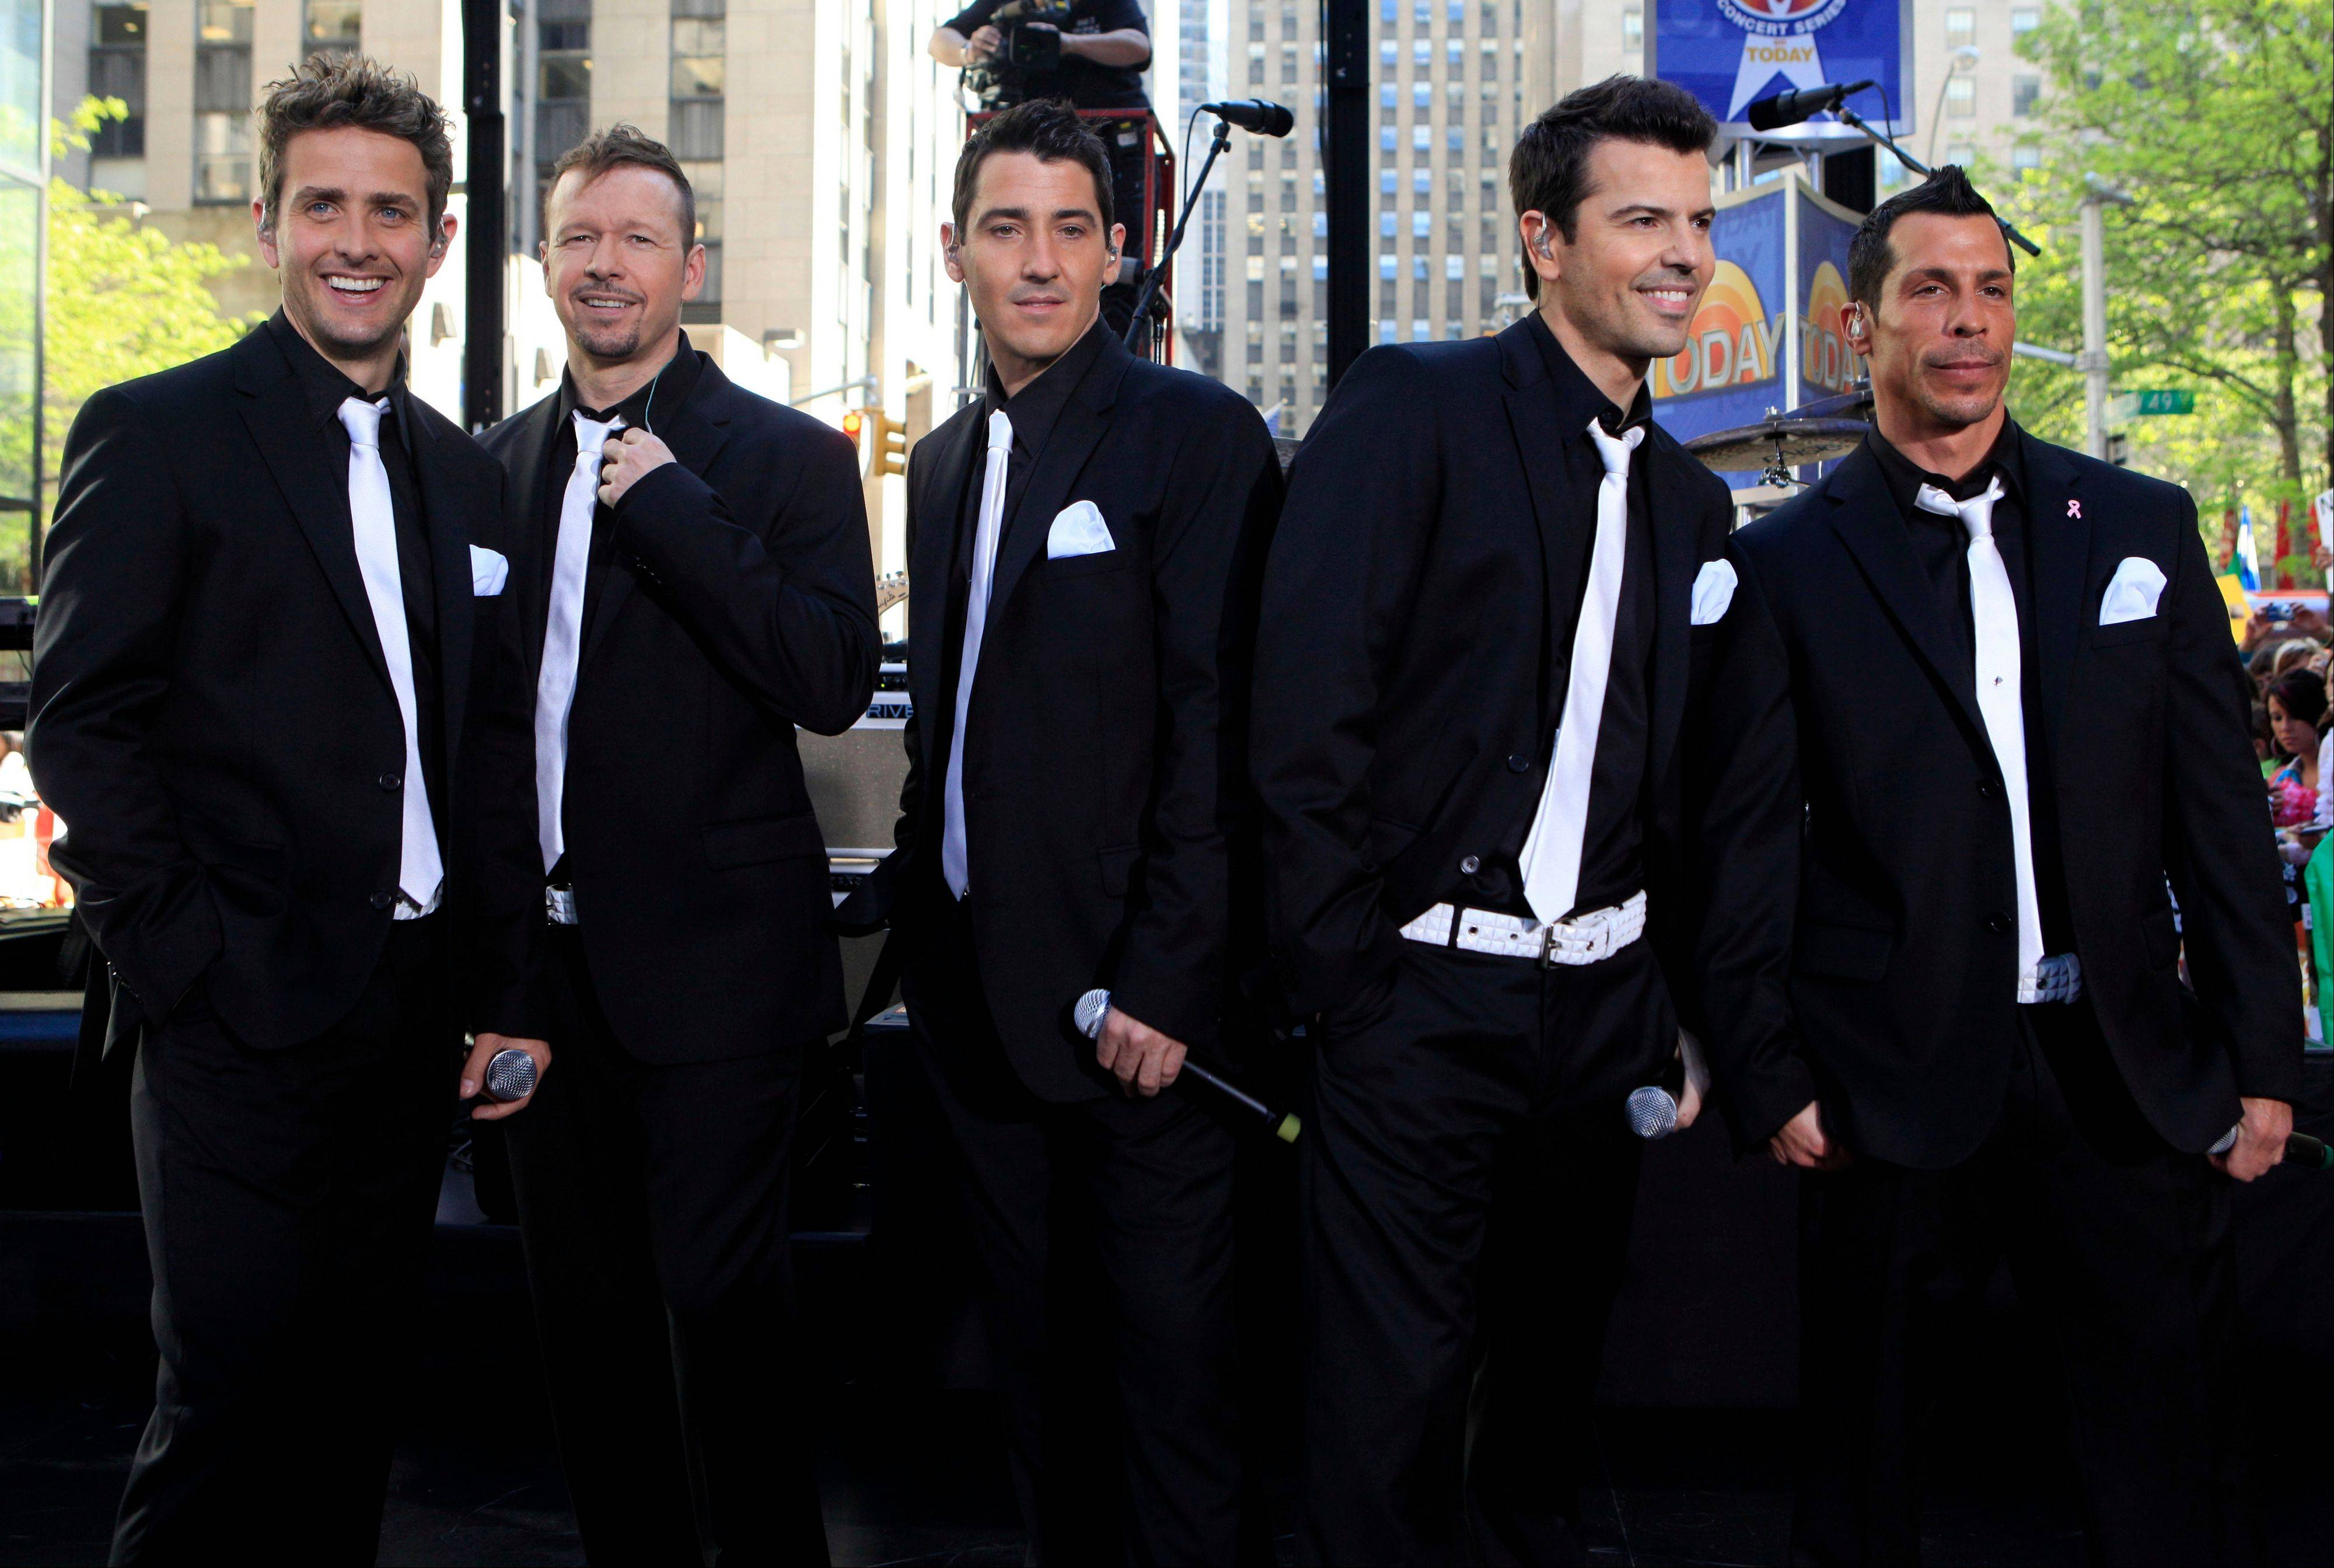 The New Kids on the Block will perform during a Boston Marathon benefit concert May 30. The show, at the TD Garden, will benefit One Fund — the collection of donations that will be distributed to the survivors of the April 15 bombings and the families of those killed in the attack.